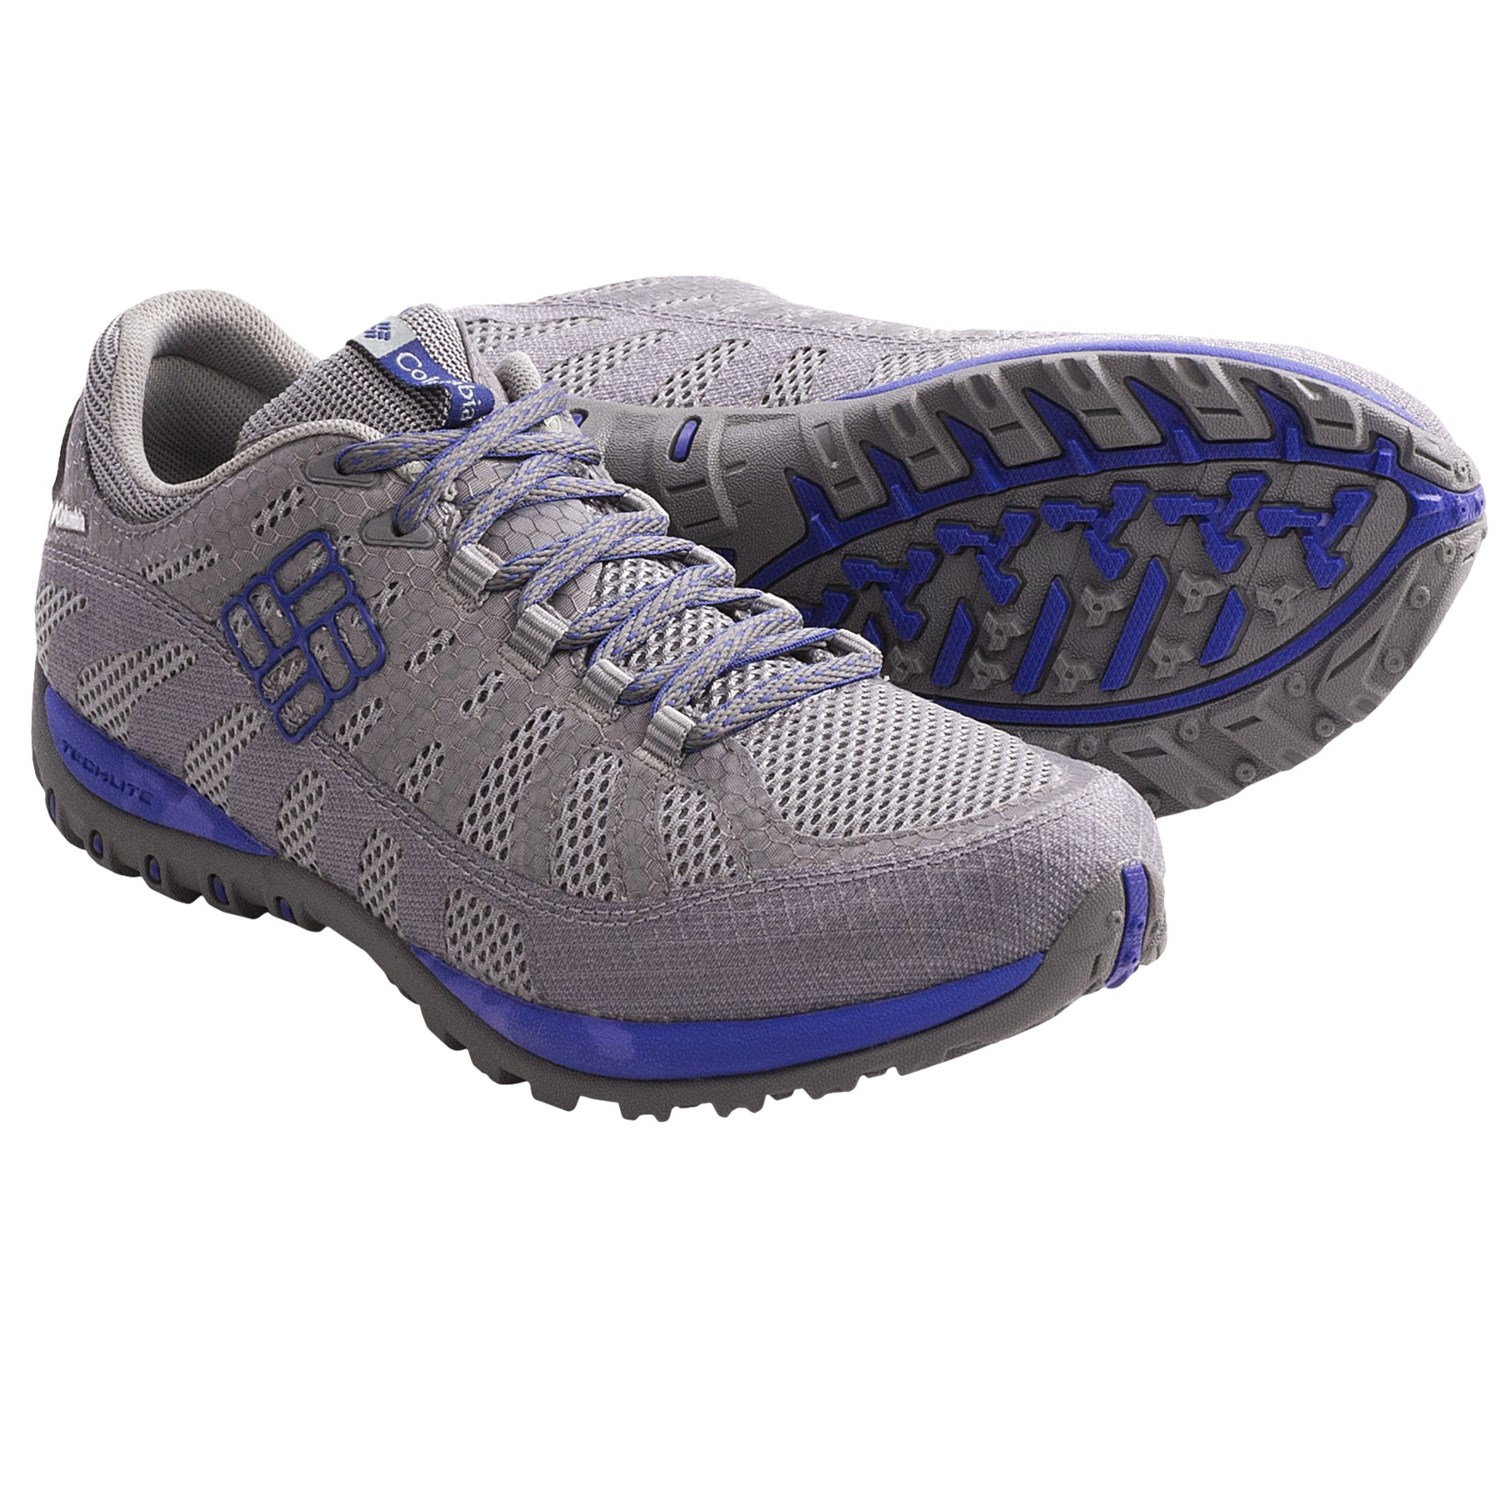 Women's Merrell^ Mimosa Emme Trail Shoes - 211947, Casual Shoes at